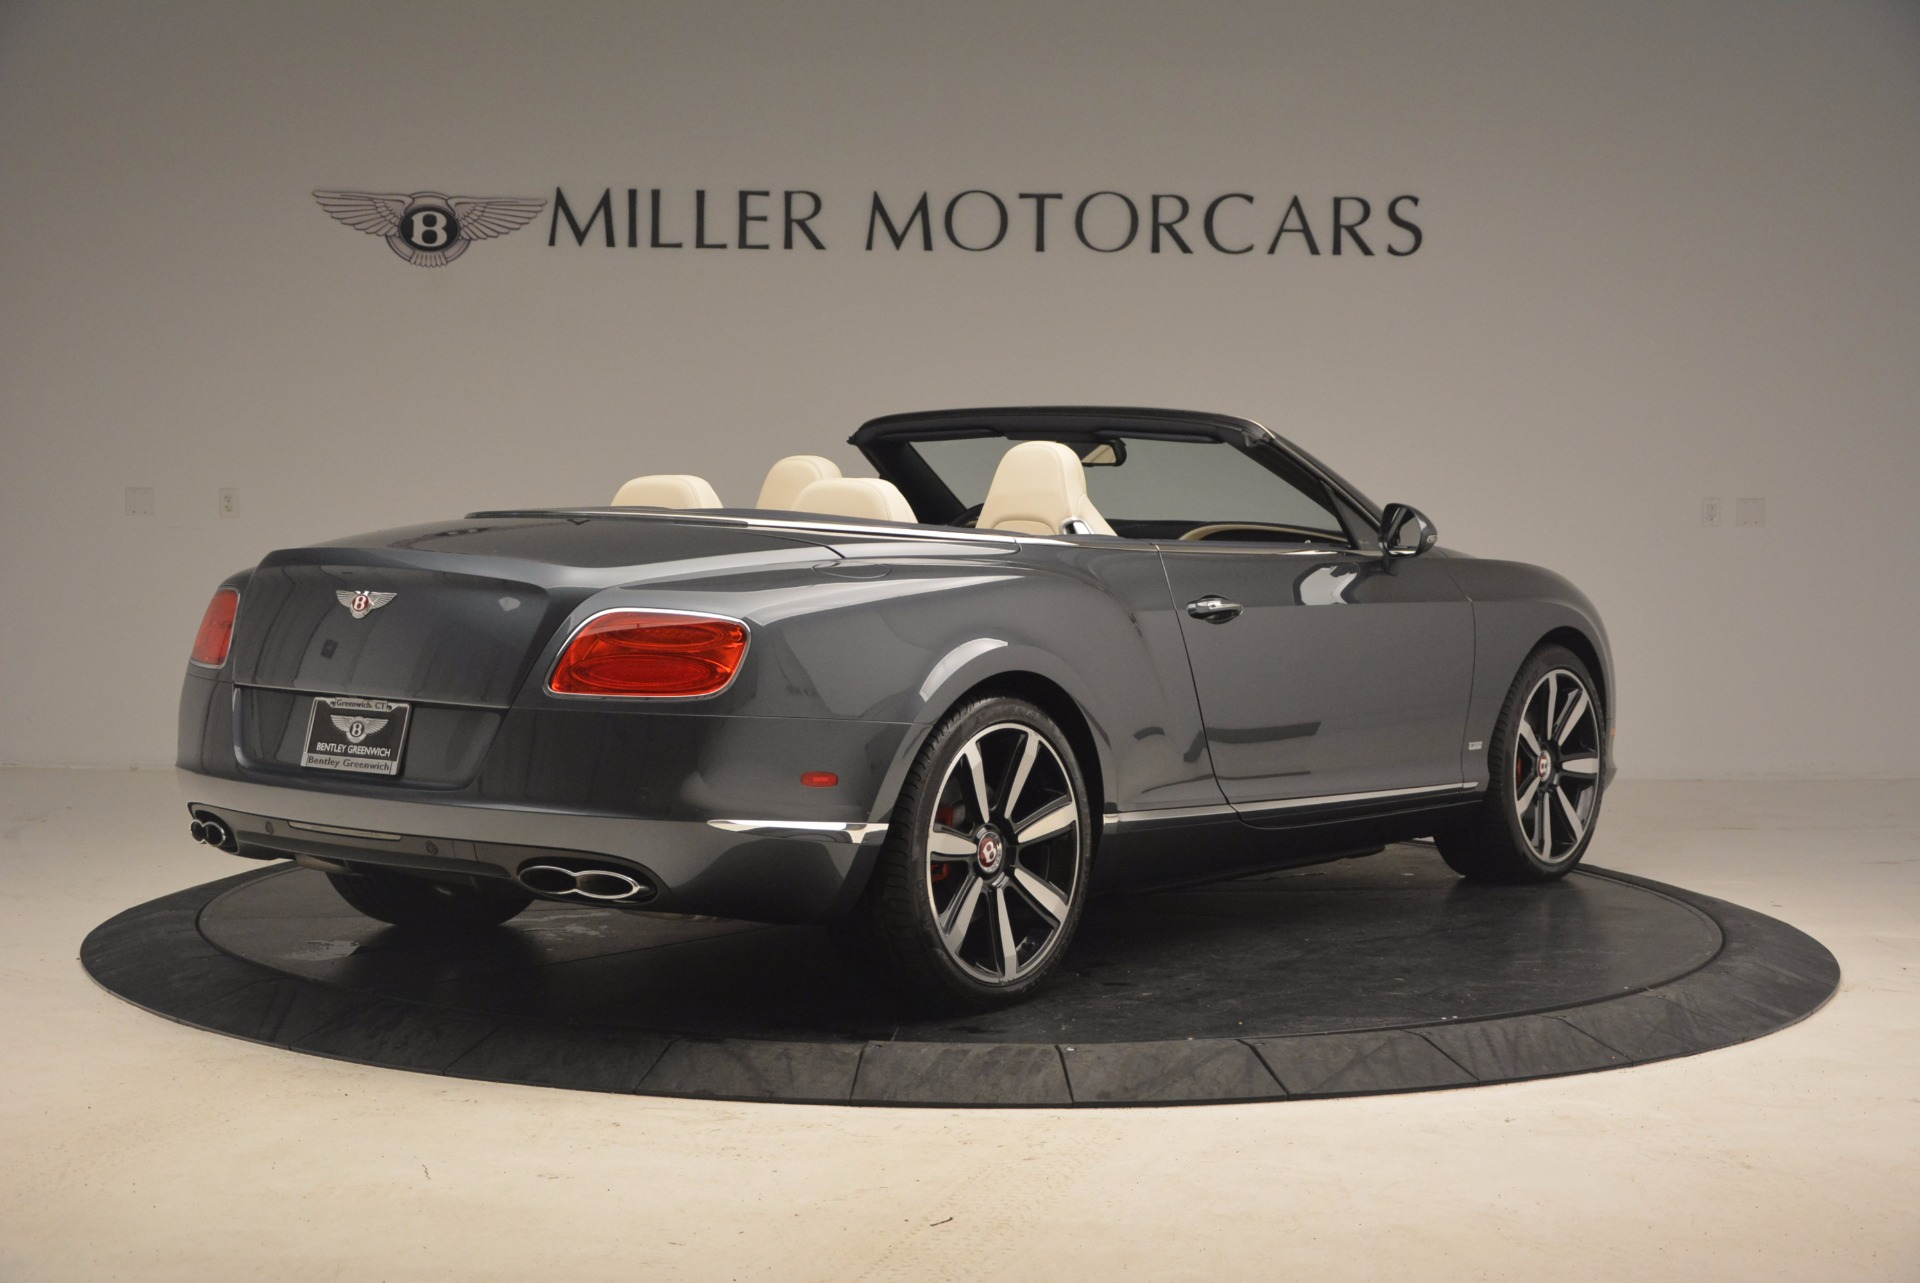 Used 2013 Bentley Continental GT V8 Le Mans Edition, 1 of 48 For Sale In Greenwich, CT 1288_p8